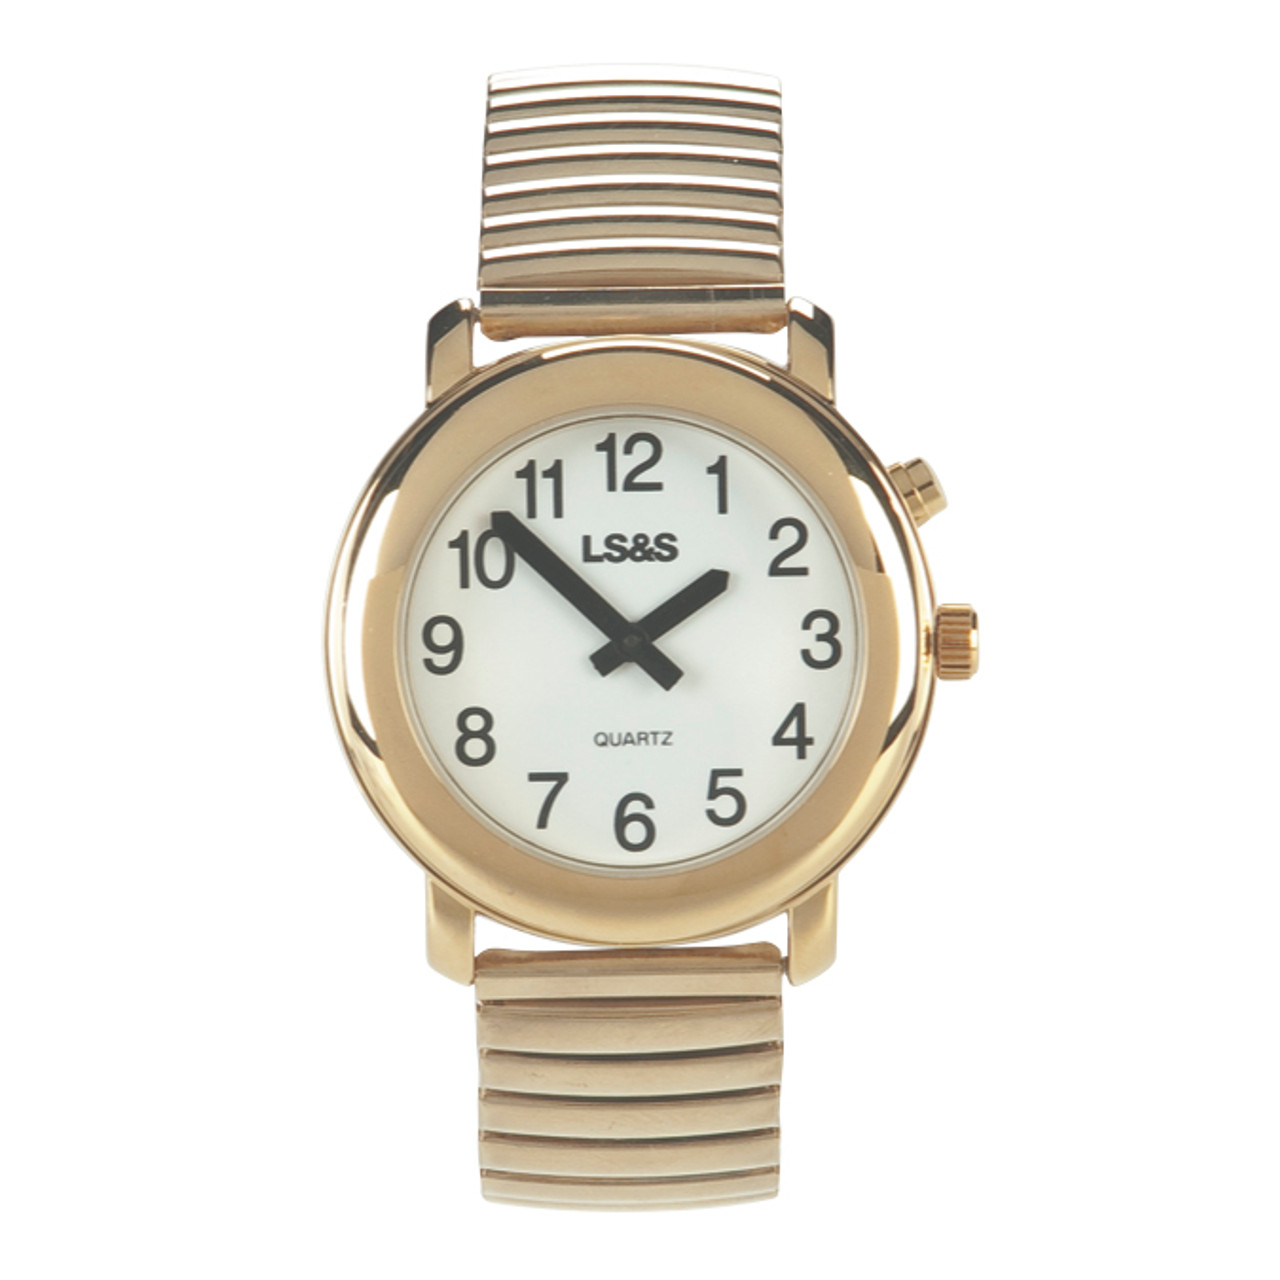 Talking 1-Button Watch With Choice of Voice White Face, Gold Color, Expansion Band